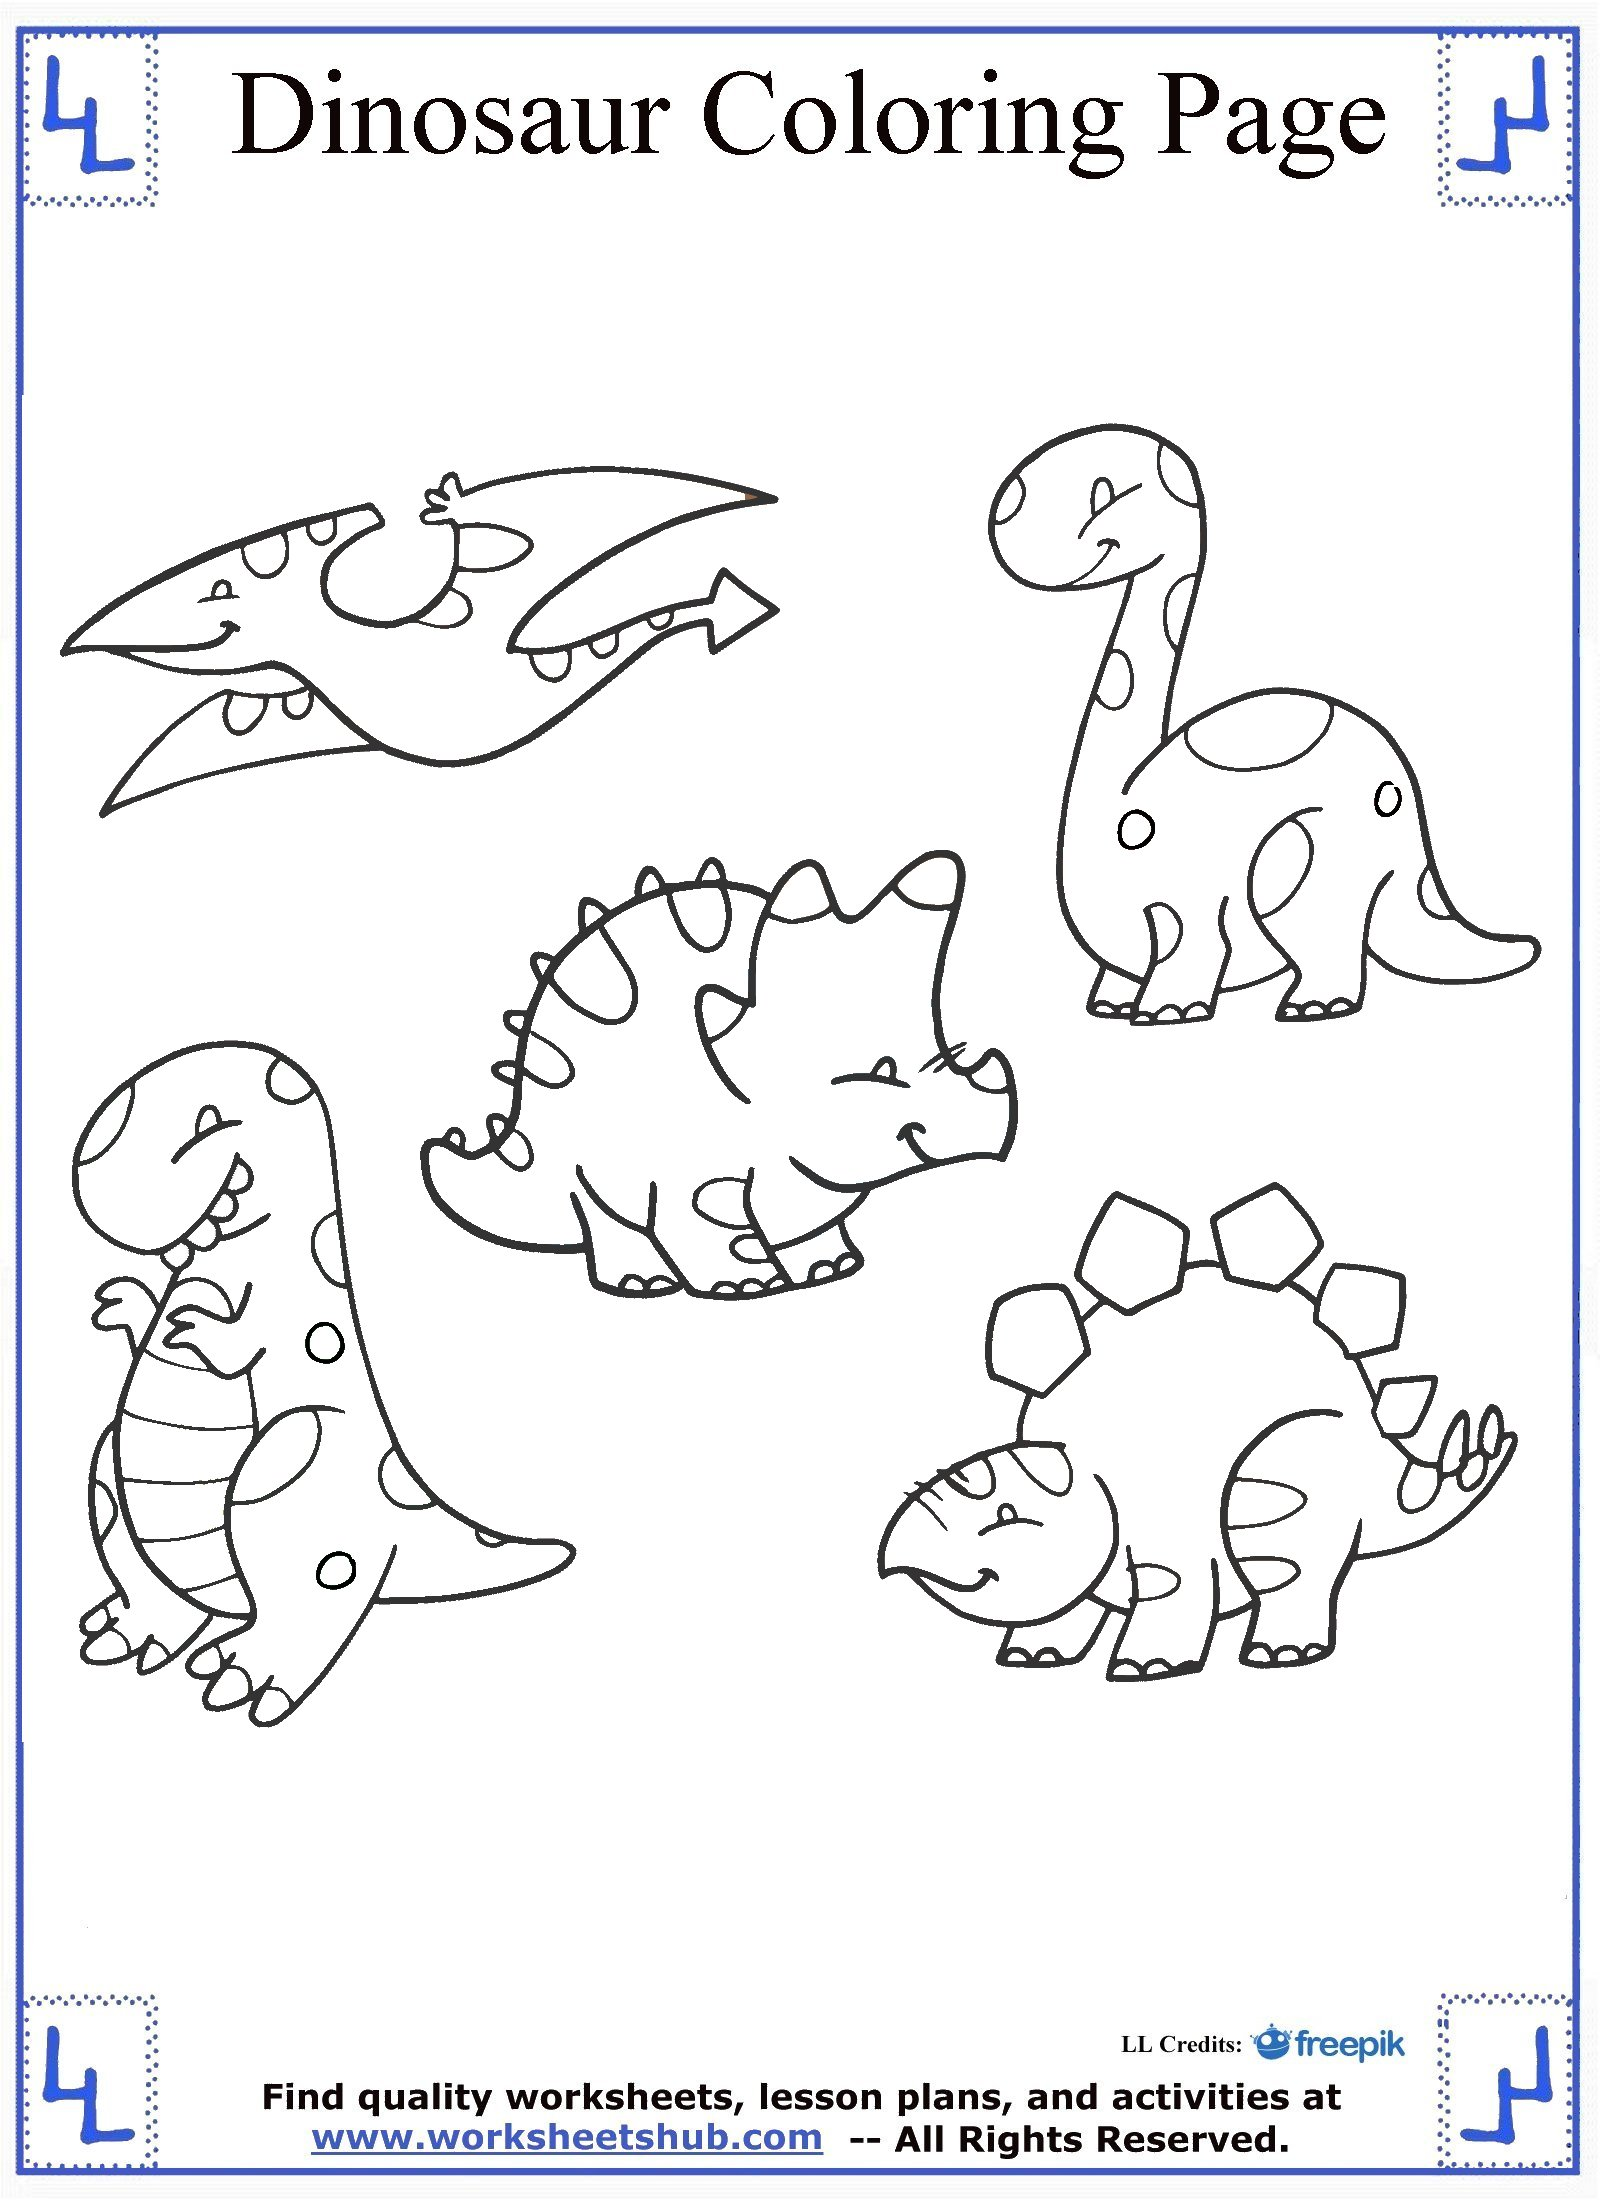 Worksheets For Dinosaurs : Dinosaur coloring pages